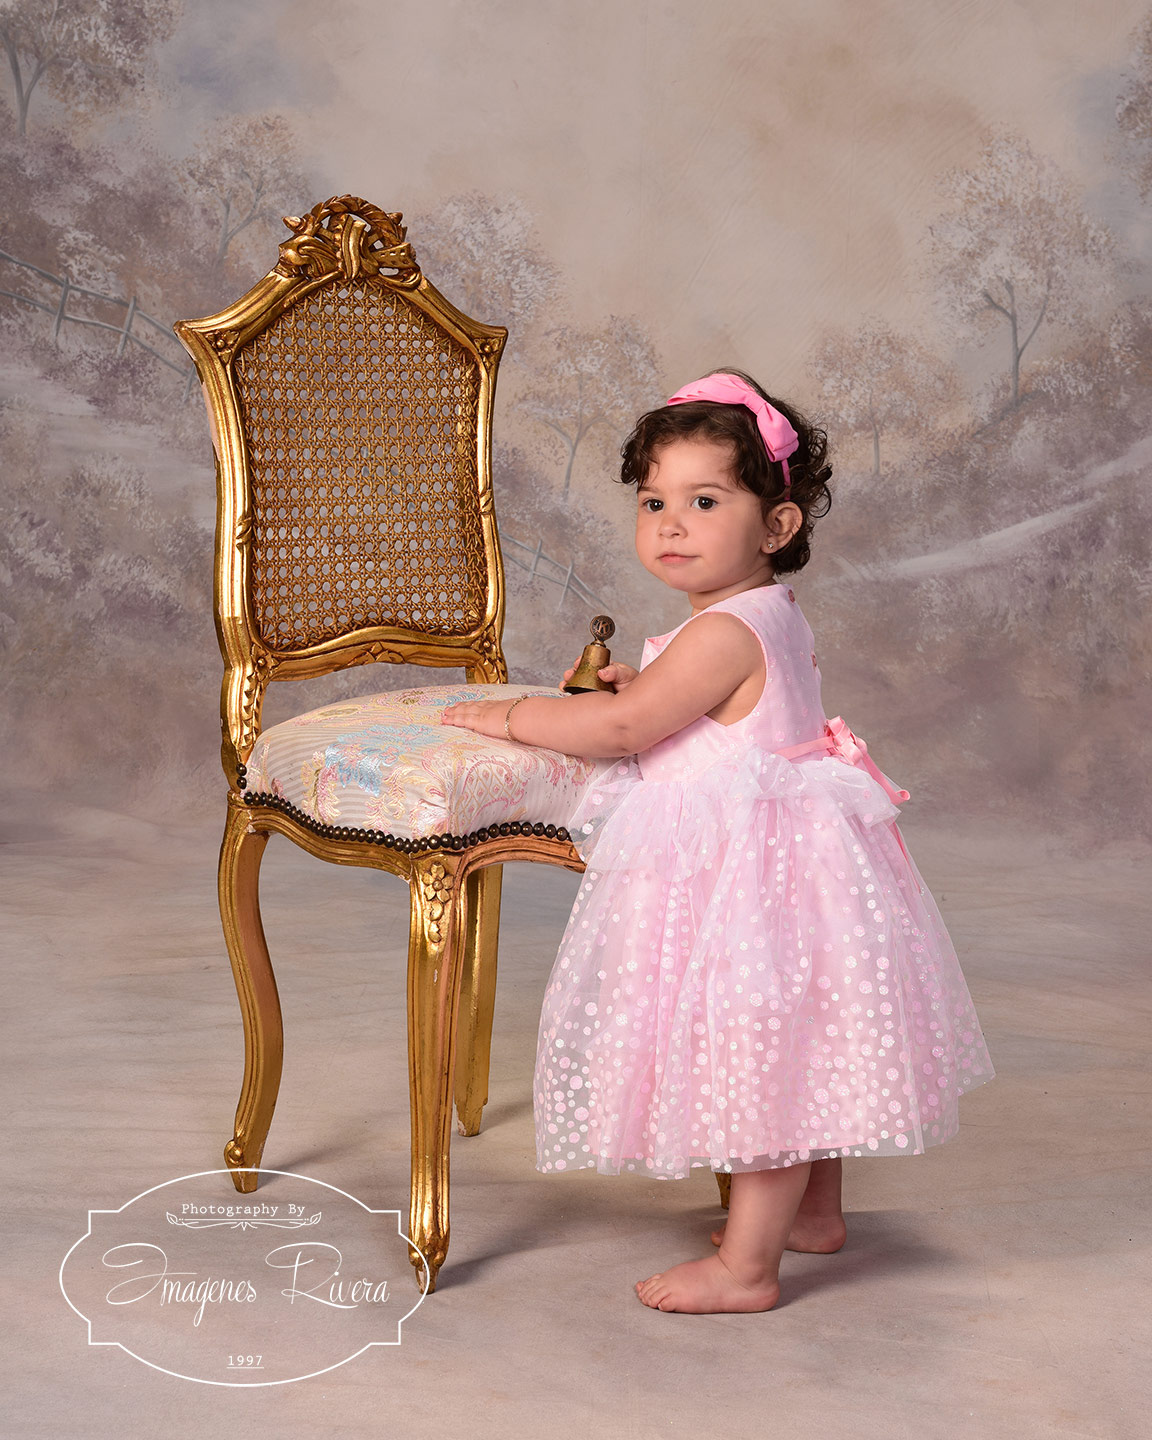 ♥ Fabiana's Photo Session | Imagenes Rivera Photography Miami ♥